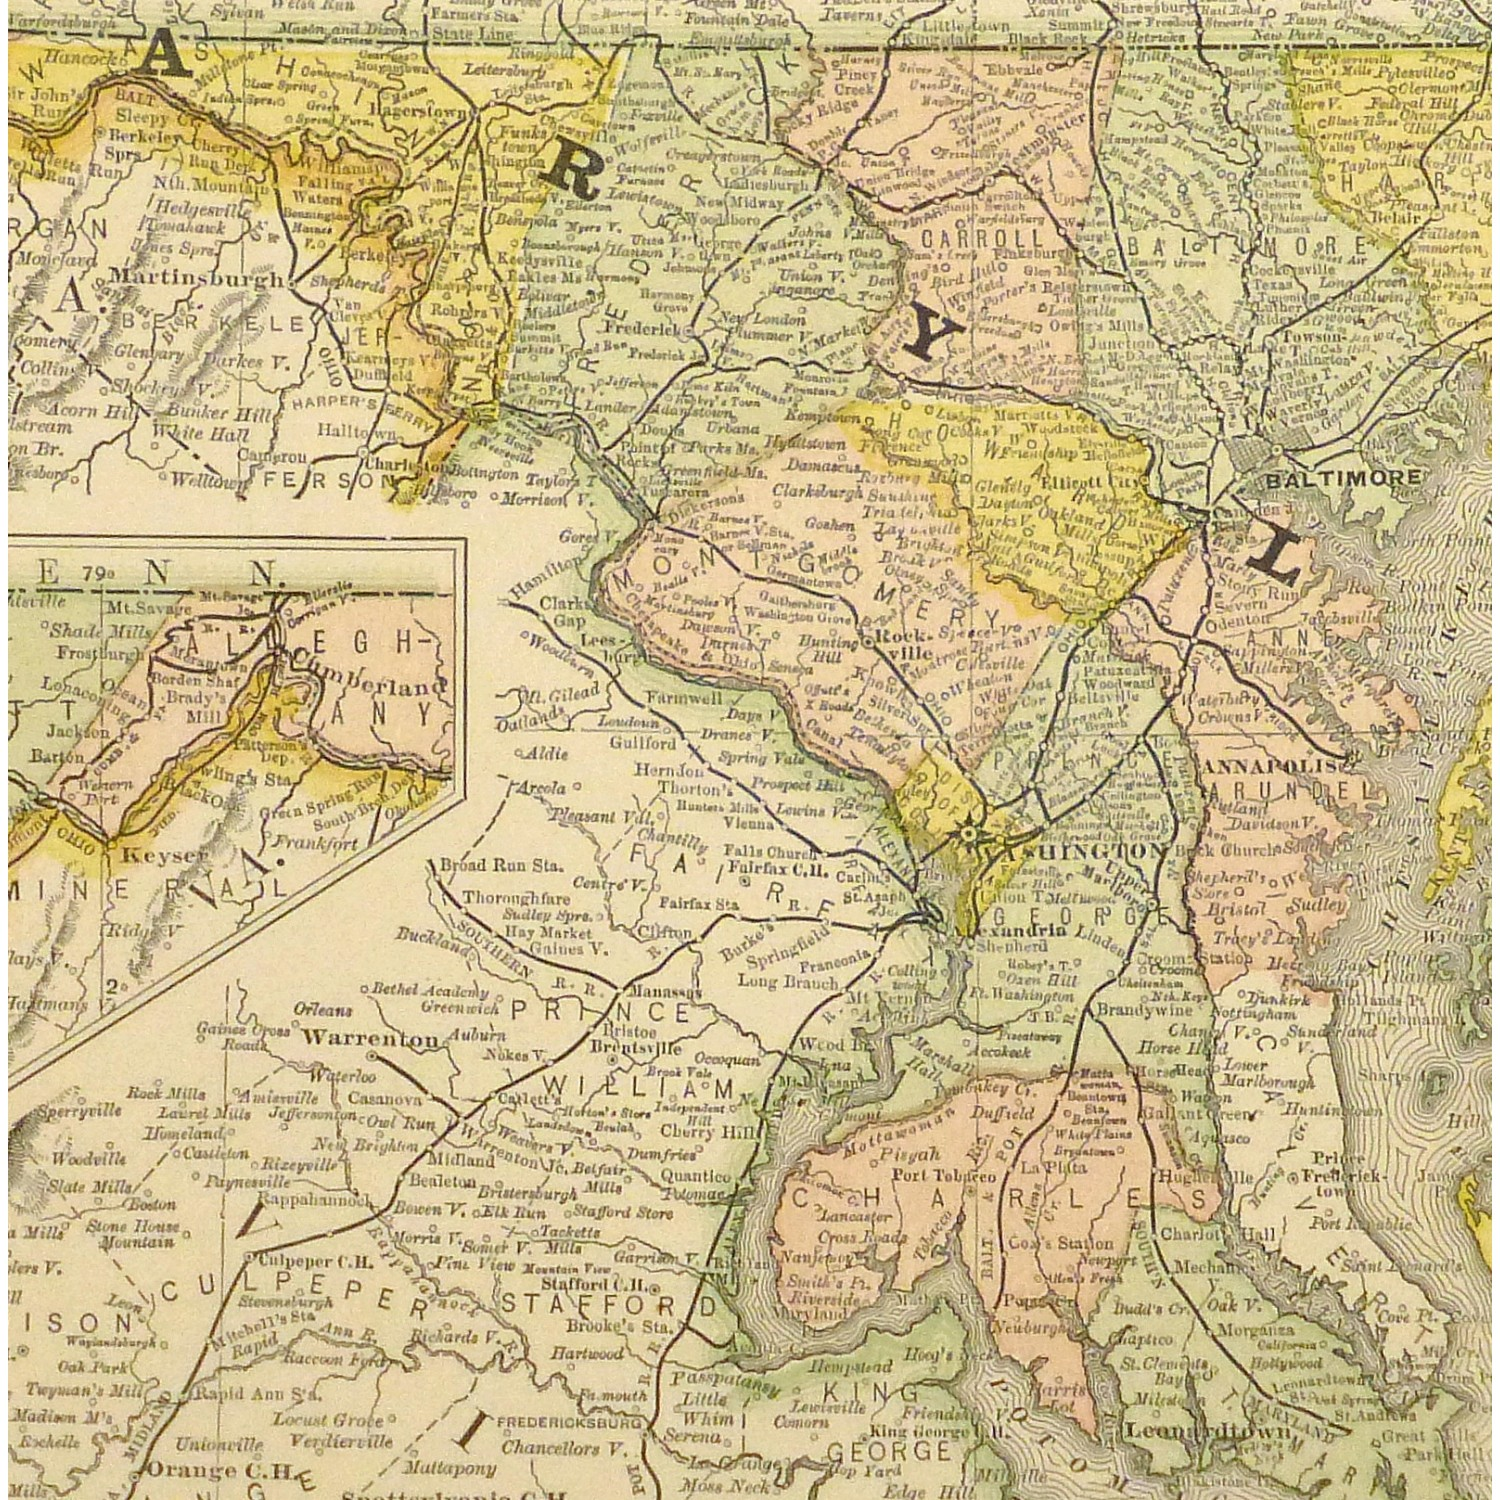 Original Antique Map of Maryland and Delaware - detail - 9227m